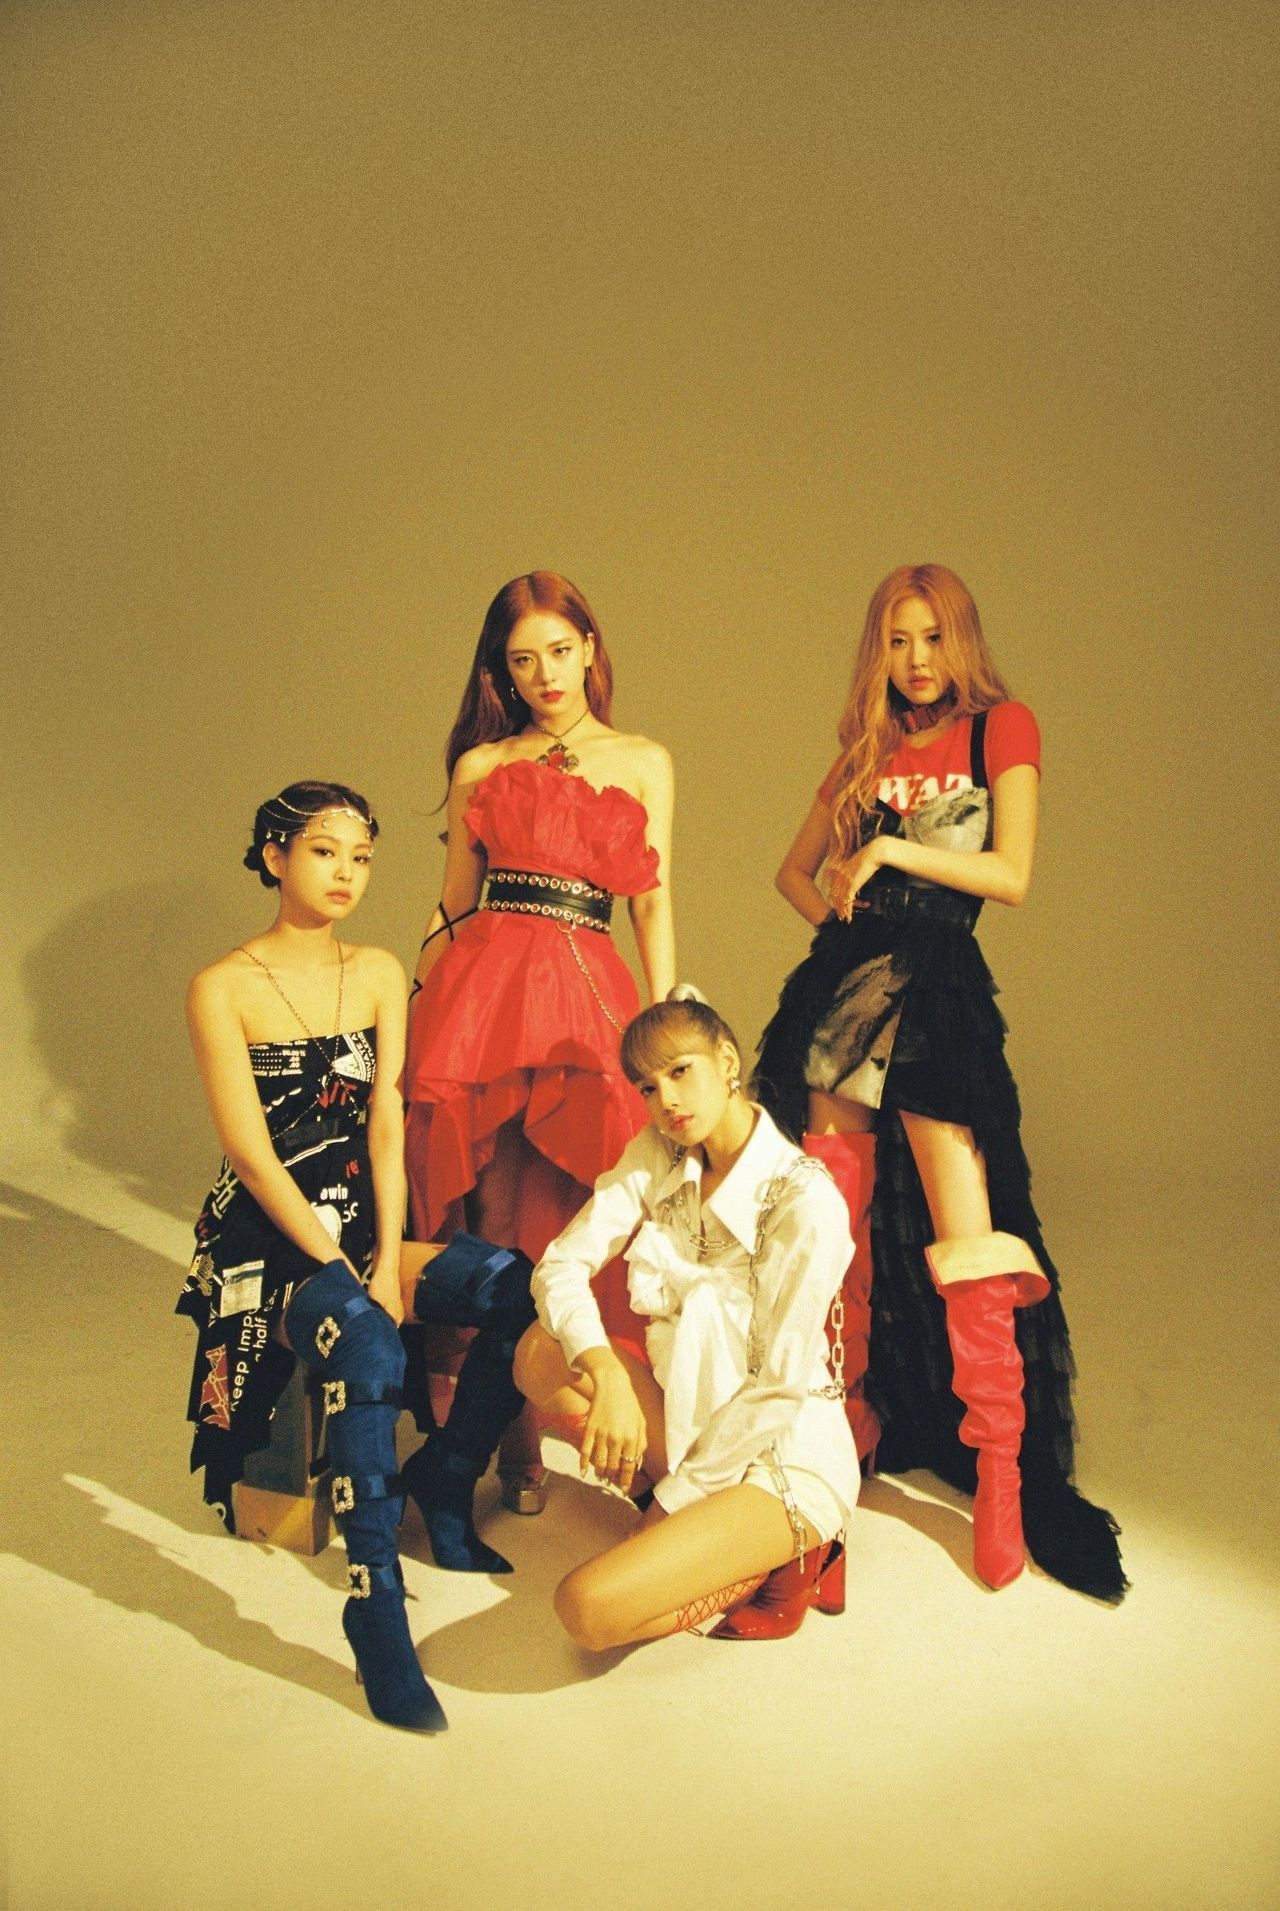 OFFICIAL] 190408 BLACKPINK ''Kill This Love'' Photoshoot